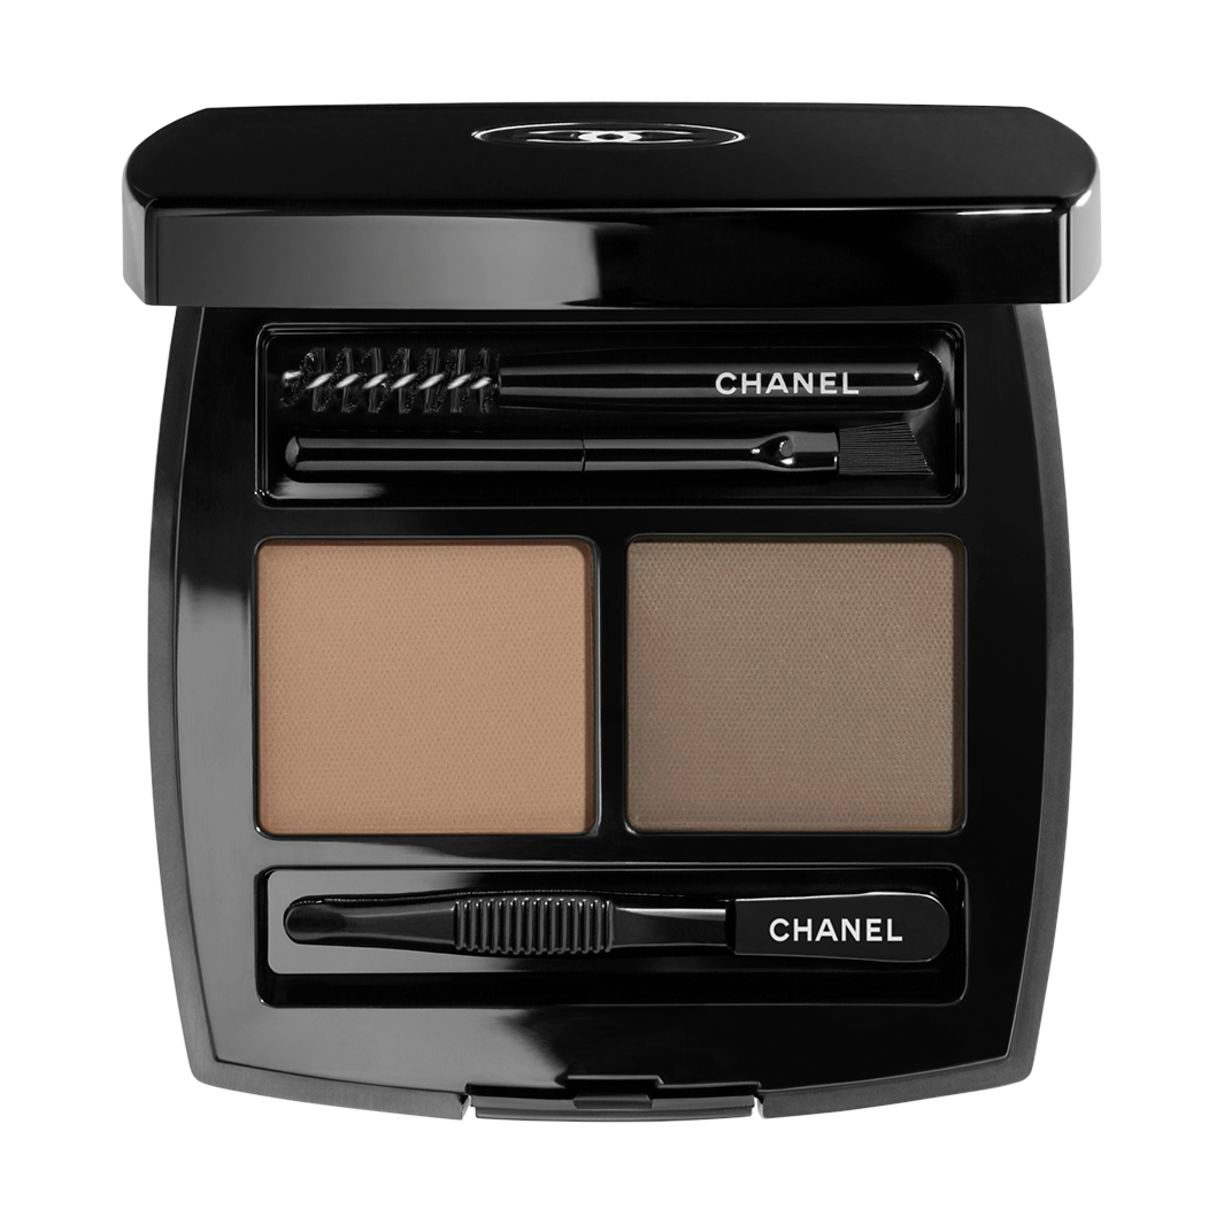 LA PALETTE SOURCILS DE CHANEL BROW POWDER DUO 40 NATUREL 4G